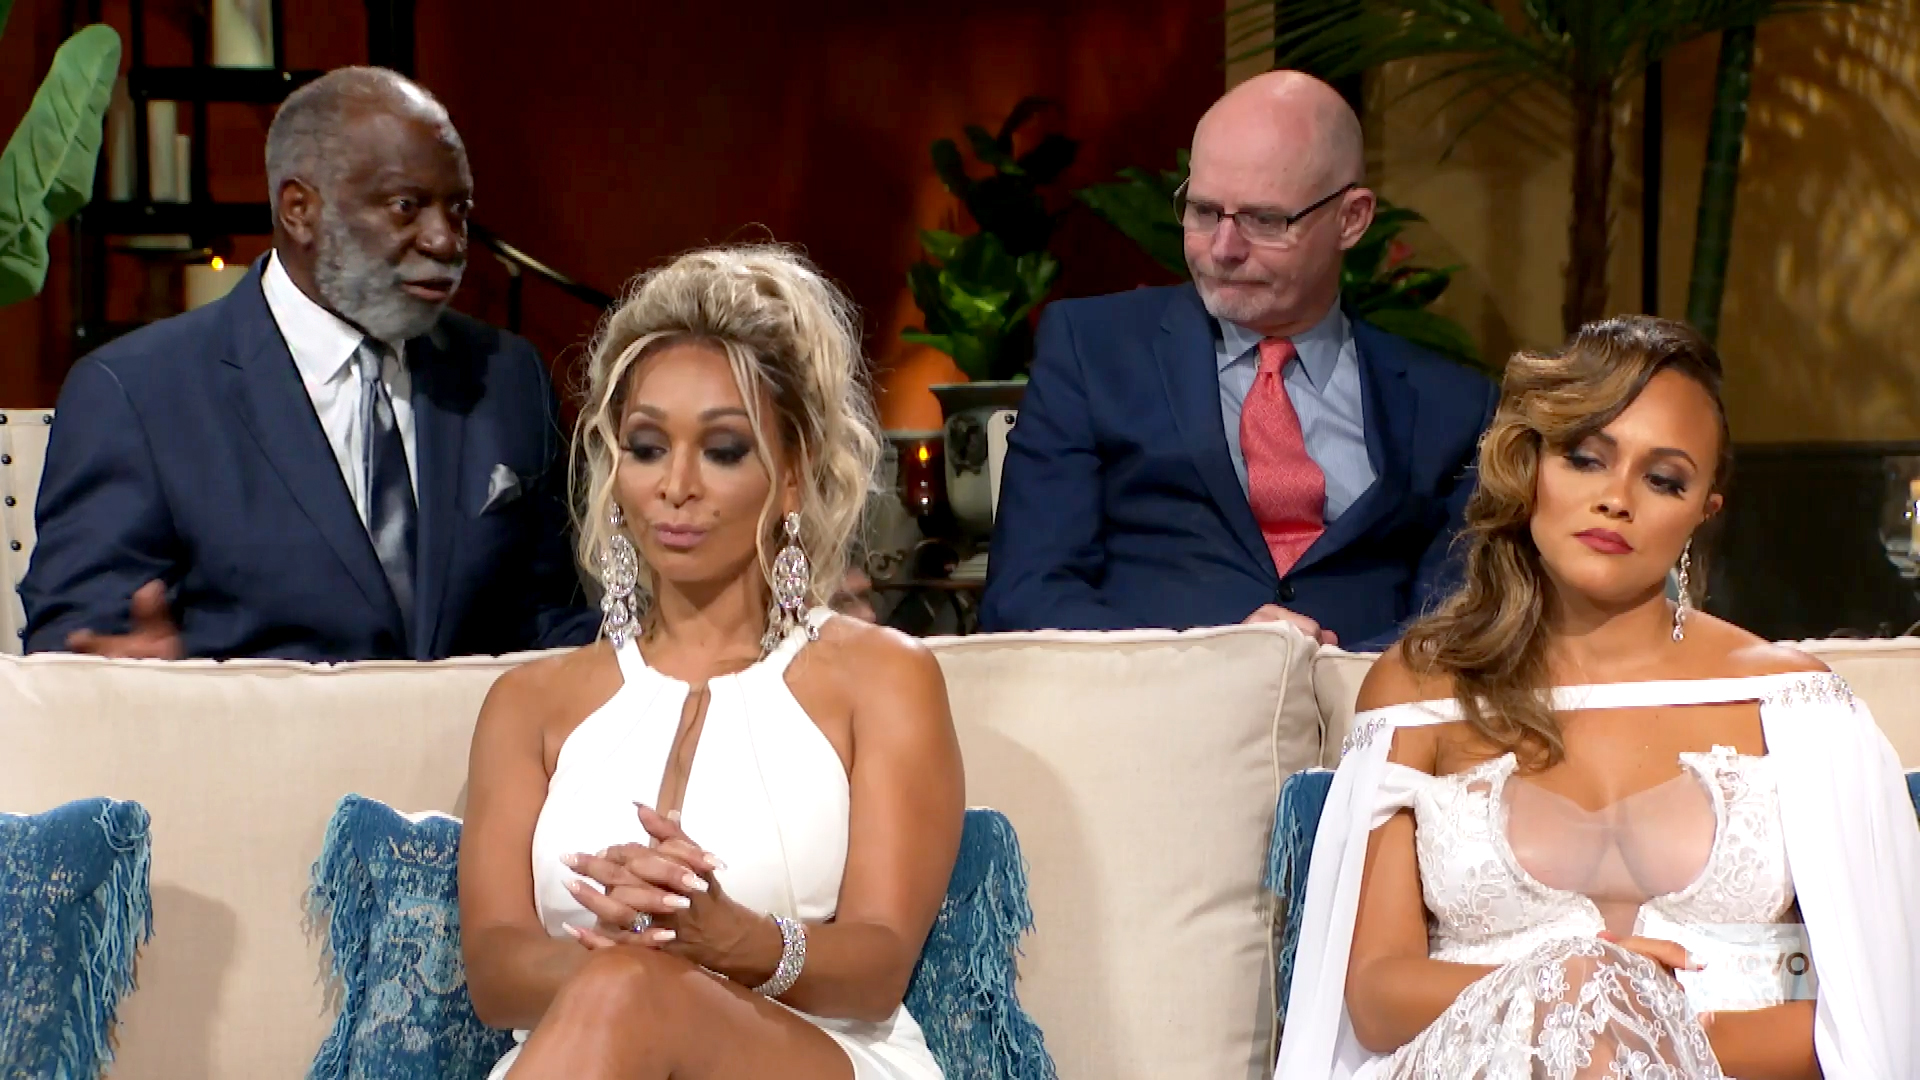 Rhop 421 Ray Makes Bold Accusations Against Michael